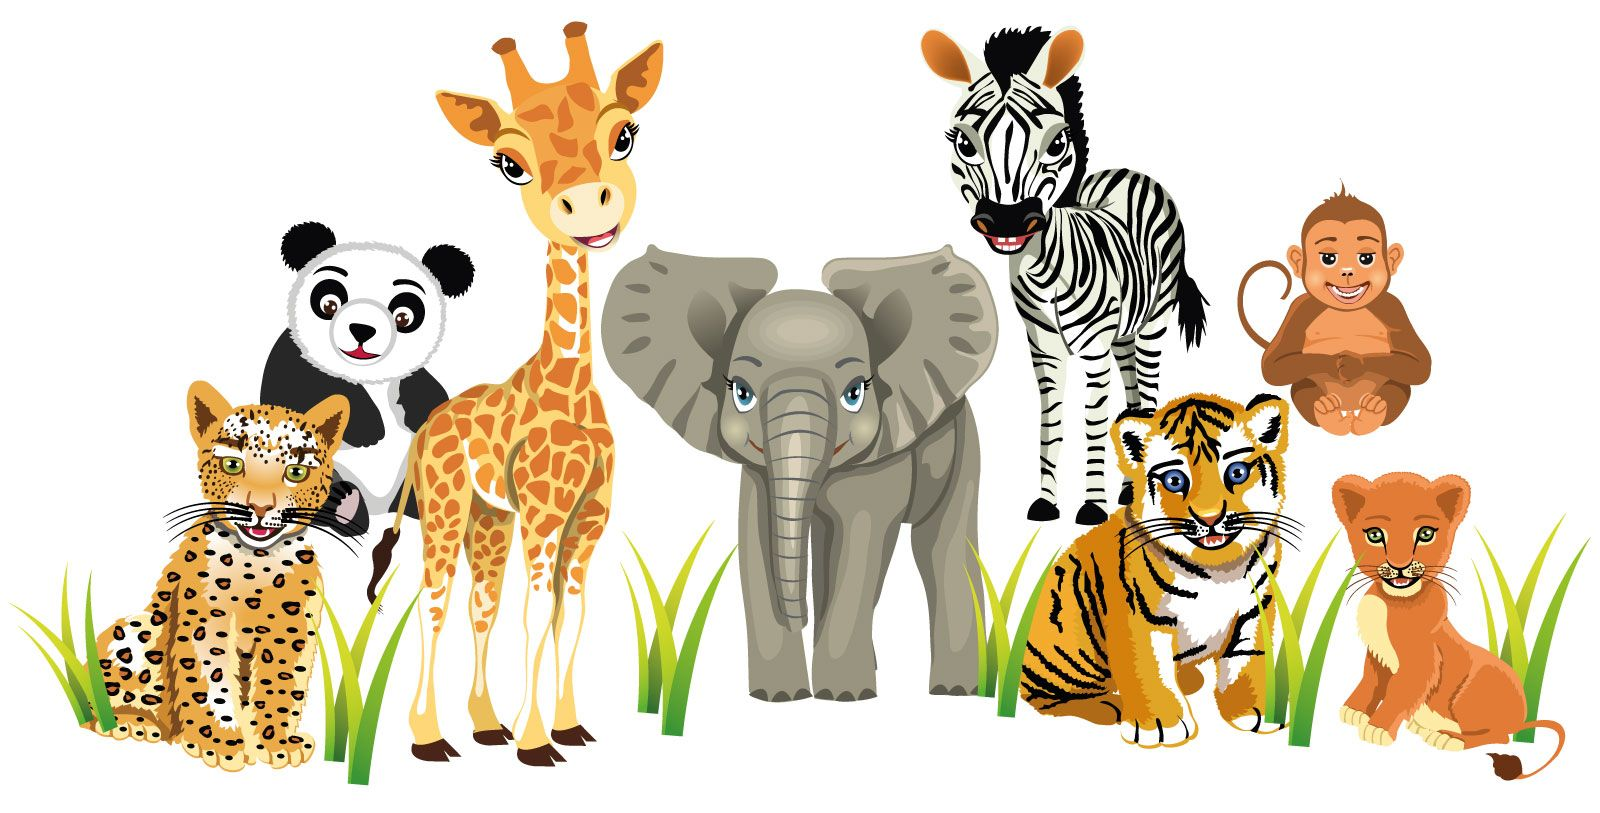 Details About Zoo Animals Wall Stickers Totally Movable Buy Now - Zoo animal wall decals